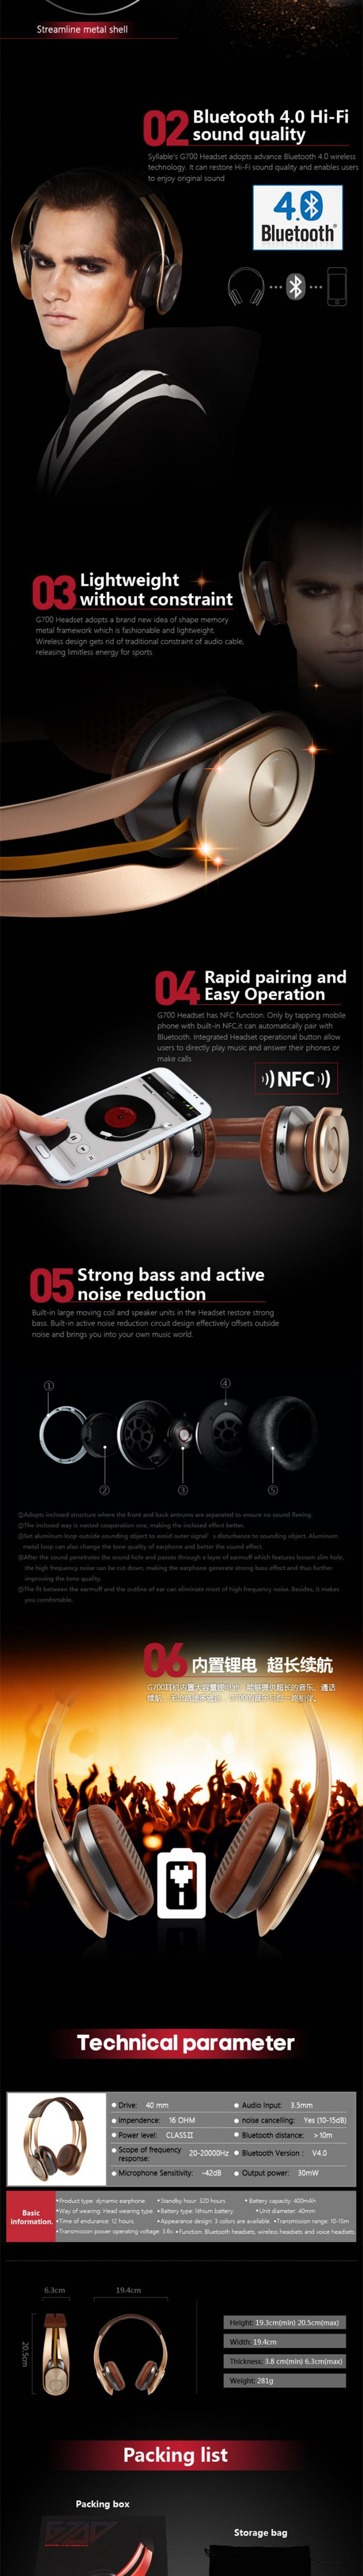 Syllable G700 Wireless Bluetooth Headphone Stereo Bluetooth 4.0 Earphone 3.5 mm HIFI Music Noise Cancellation With Double Mic